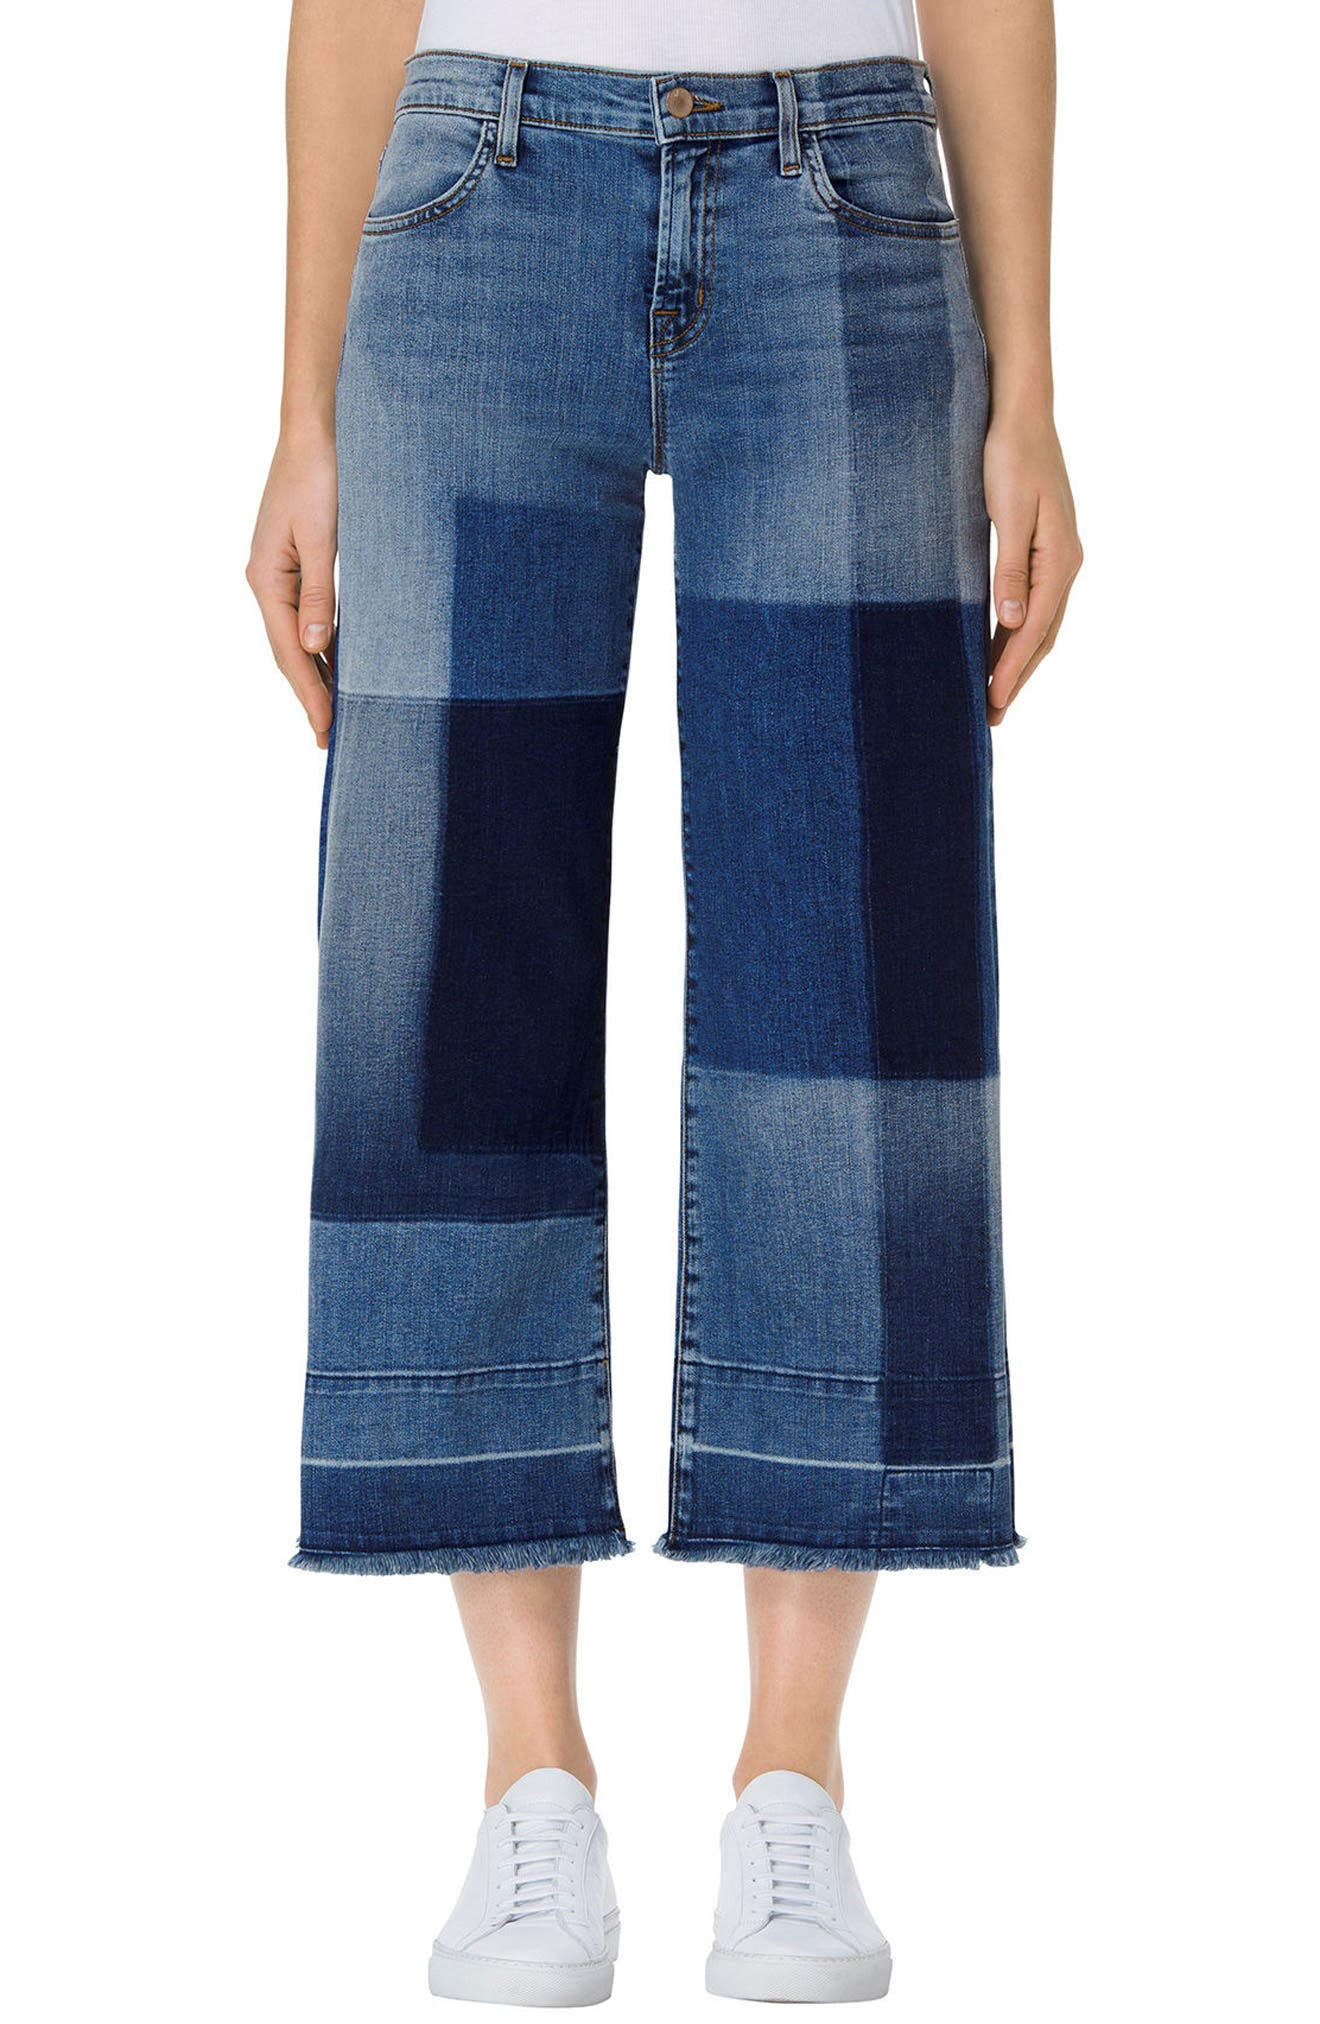 Alternate Image 1 Selected - J Brand Patchwork Culotte Jeans (Optimum)